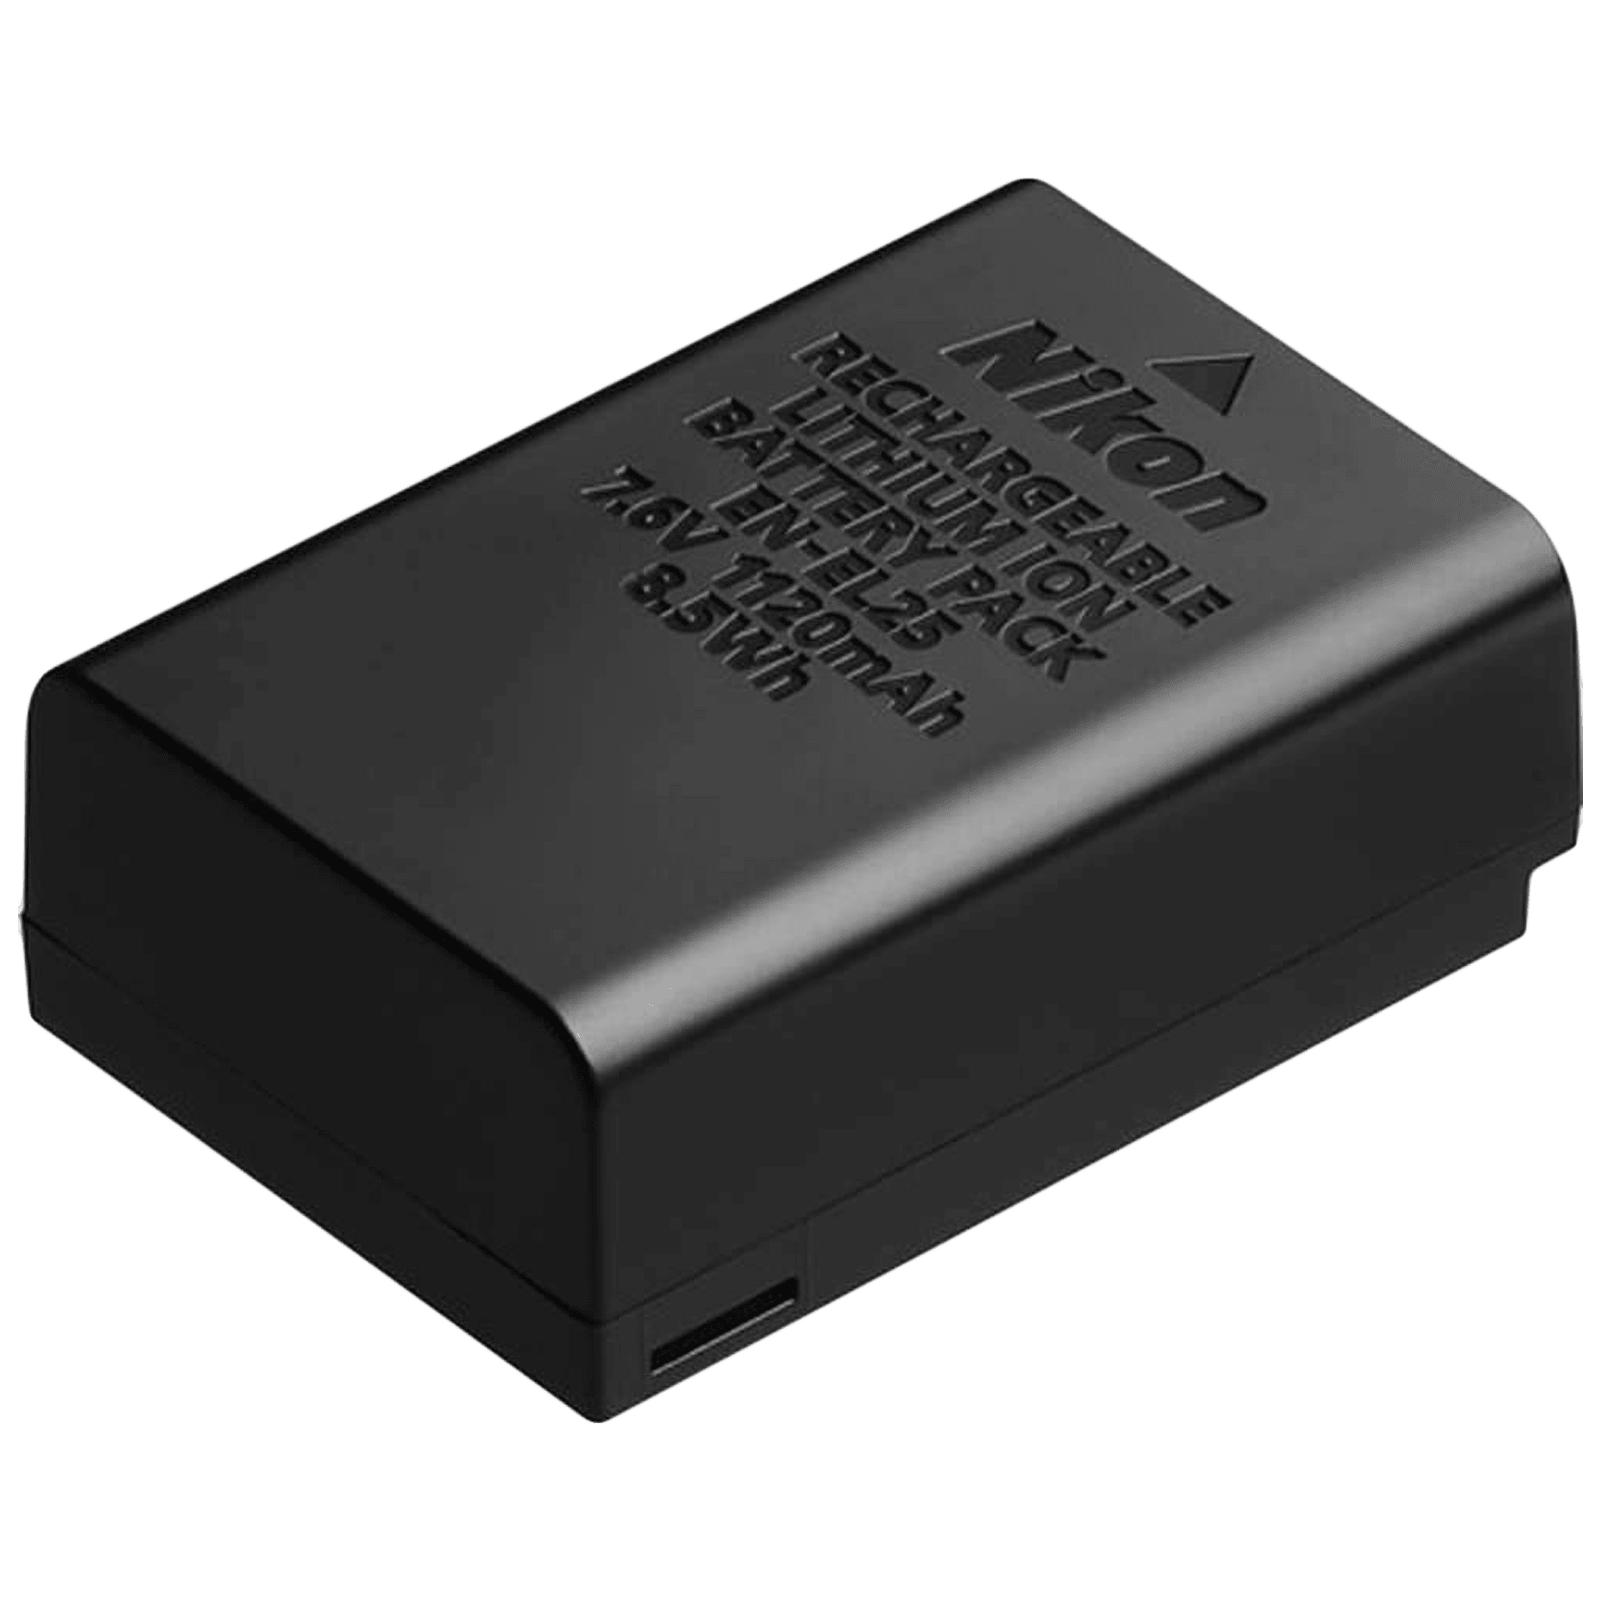 Nikon 1120mAh Lithium-Ion Camera Battery for Z 50 (Compact and Lightweight, EN-EL25, Black)